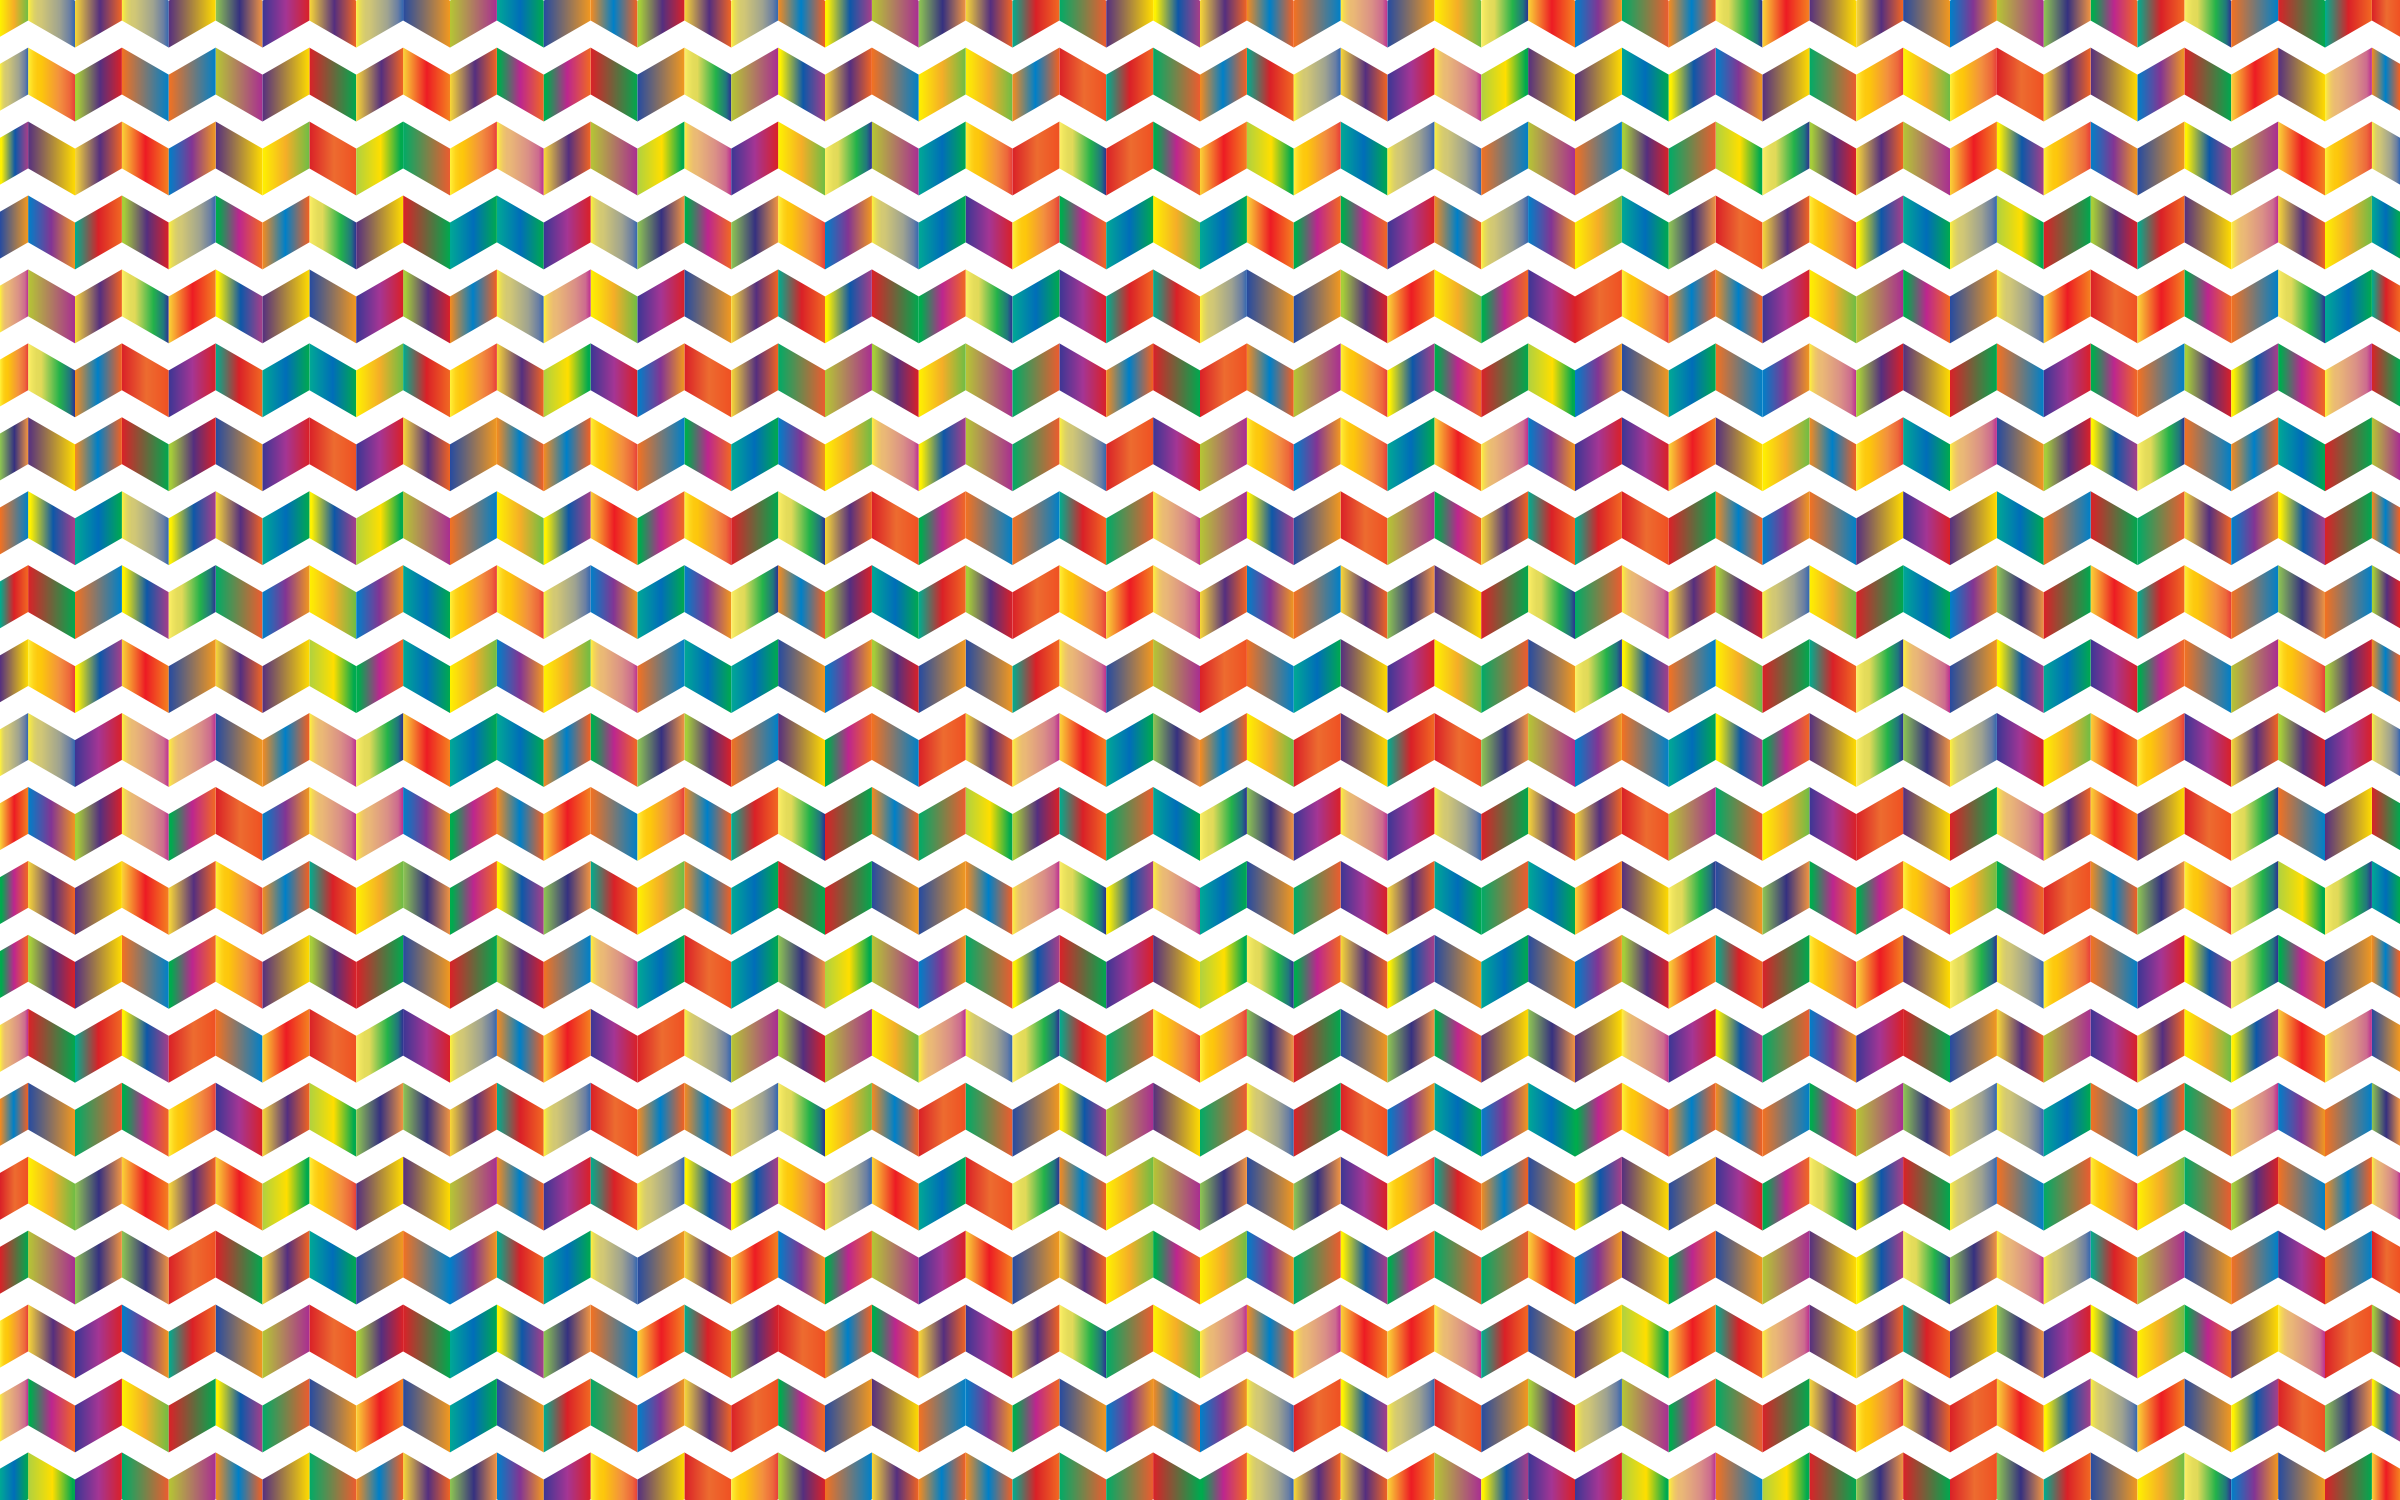 Prismatic Chevrons Pattern 4 by GDJ